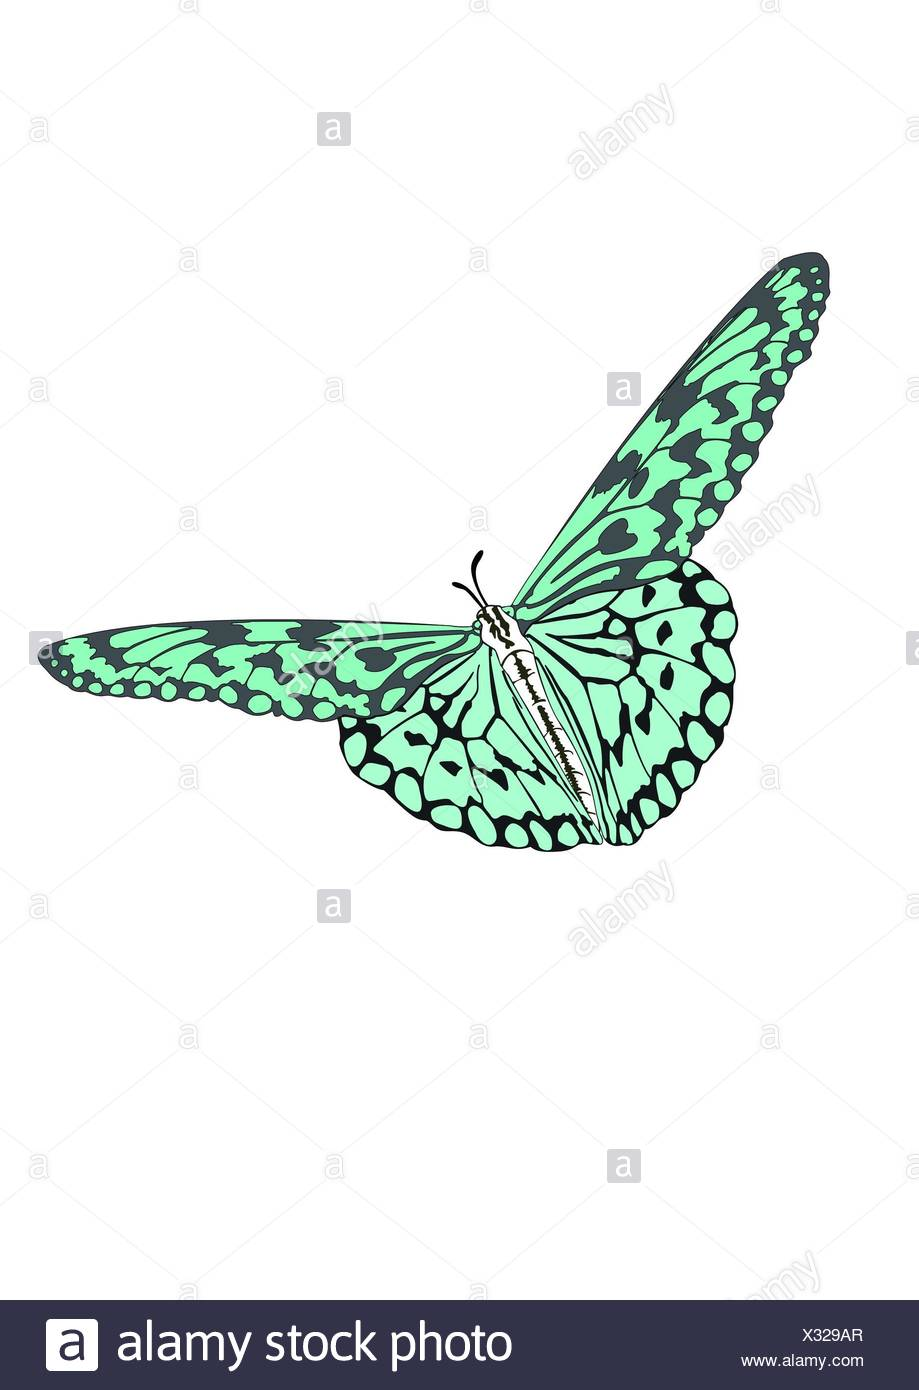 The Butterfly with open wings in a top view as a flying migratory insect butterflies - Stock Image